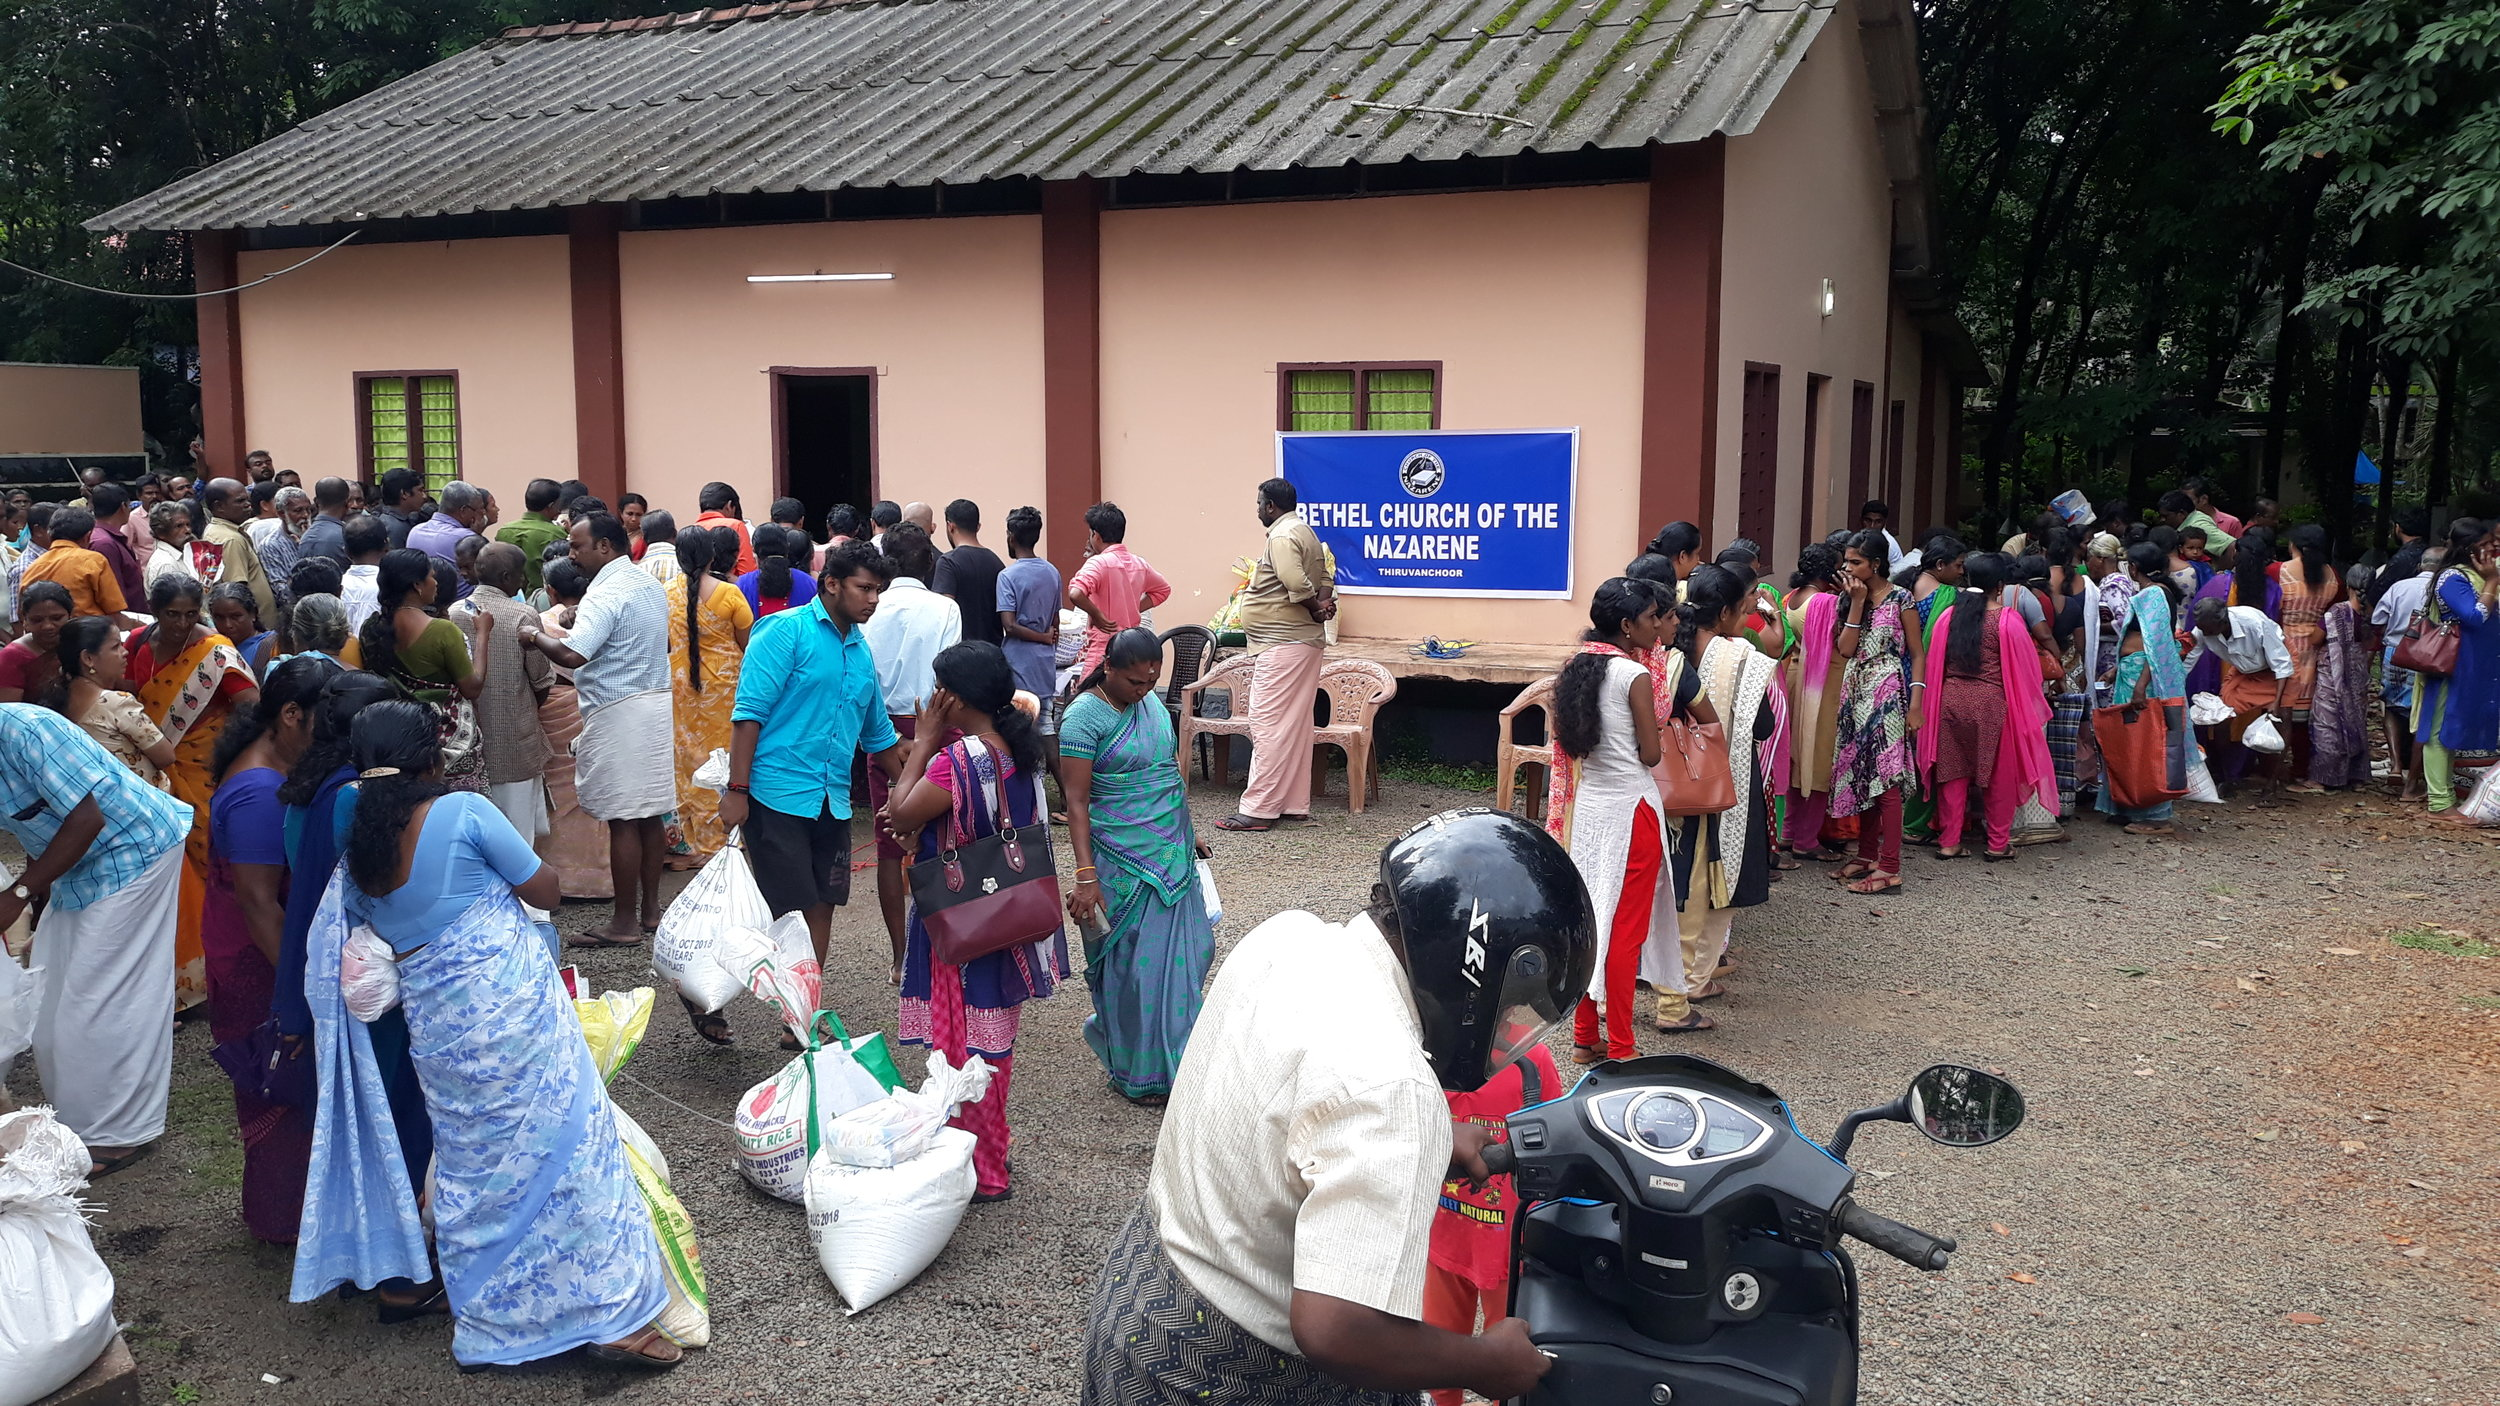 Food and supply distribution in India, August 2019